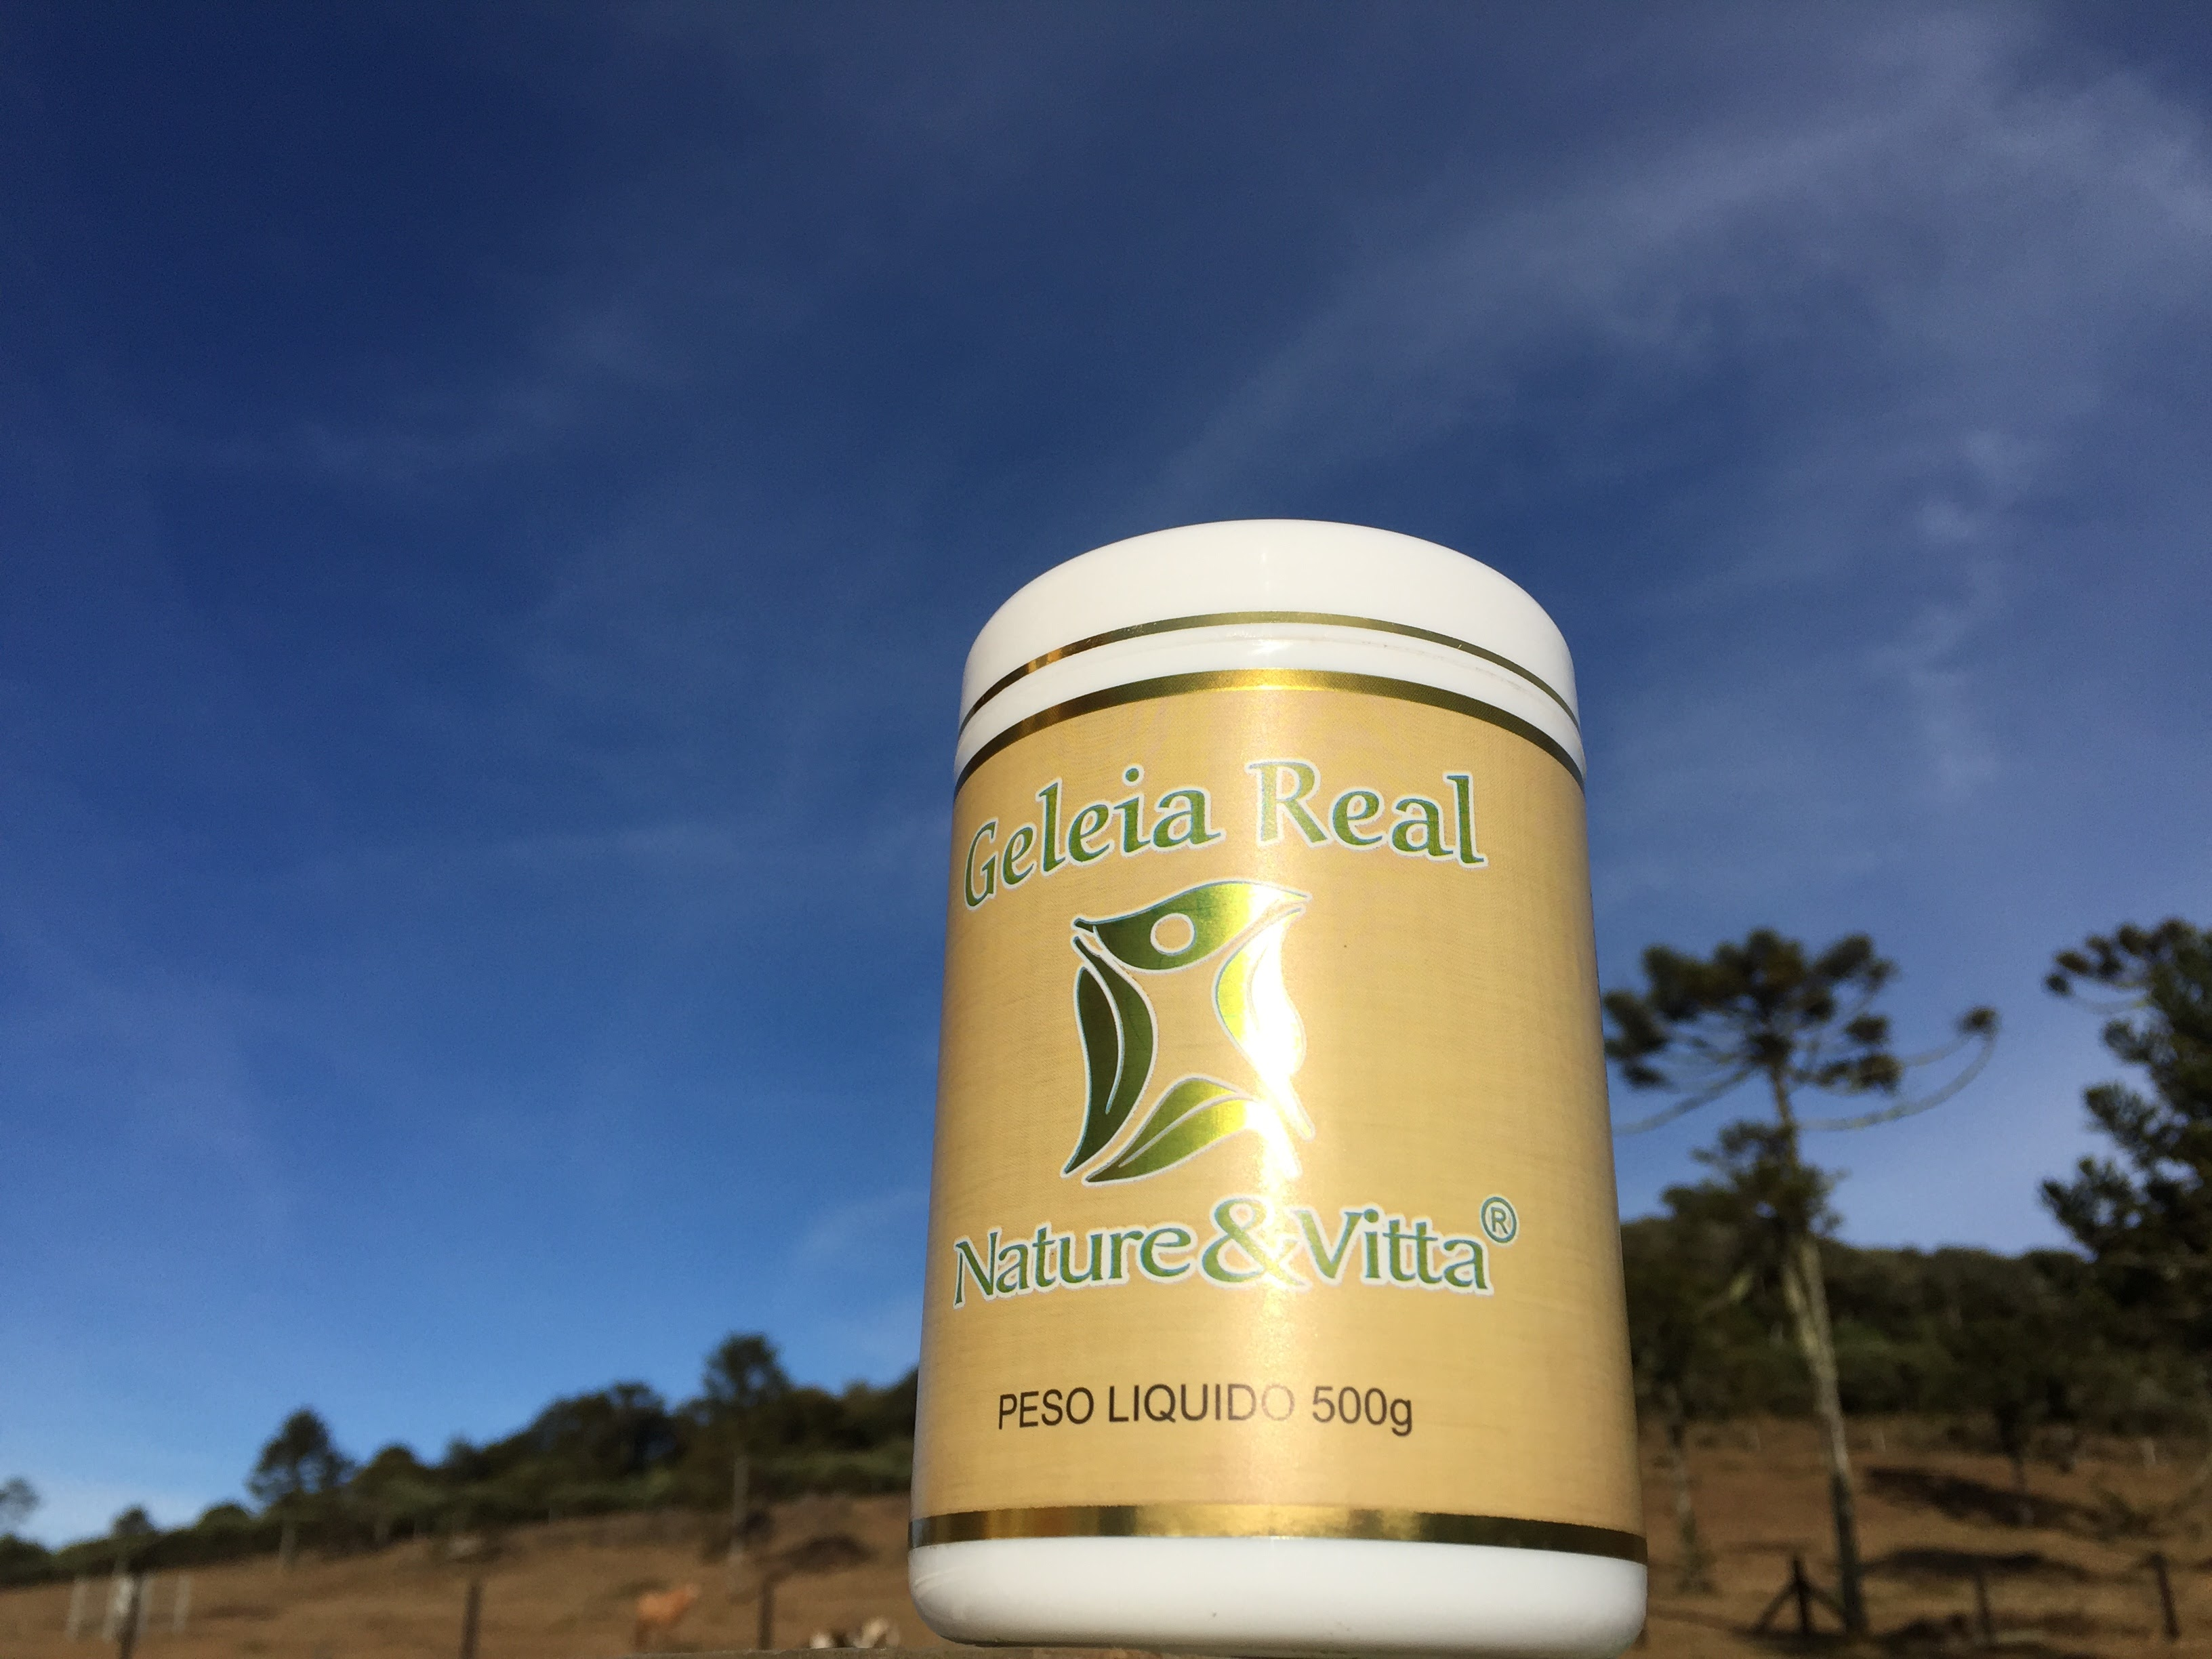 Geleia Real Nature&Vitta 500g